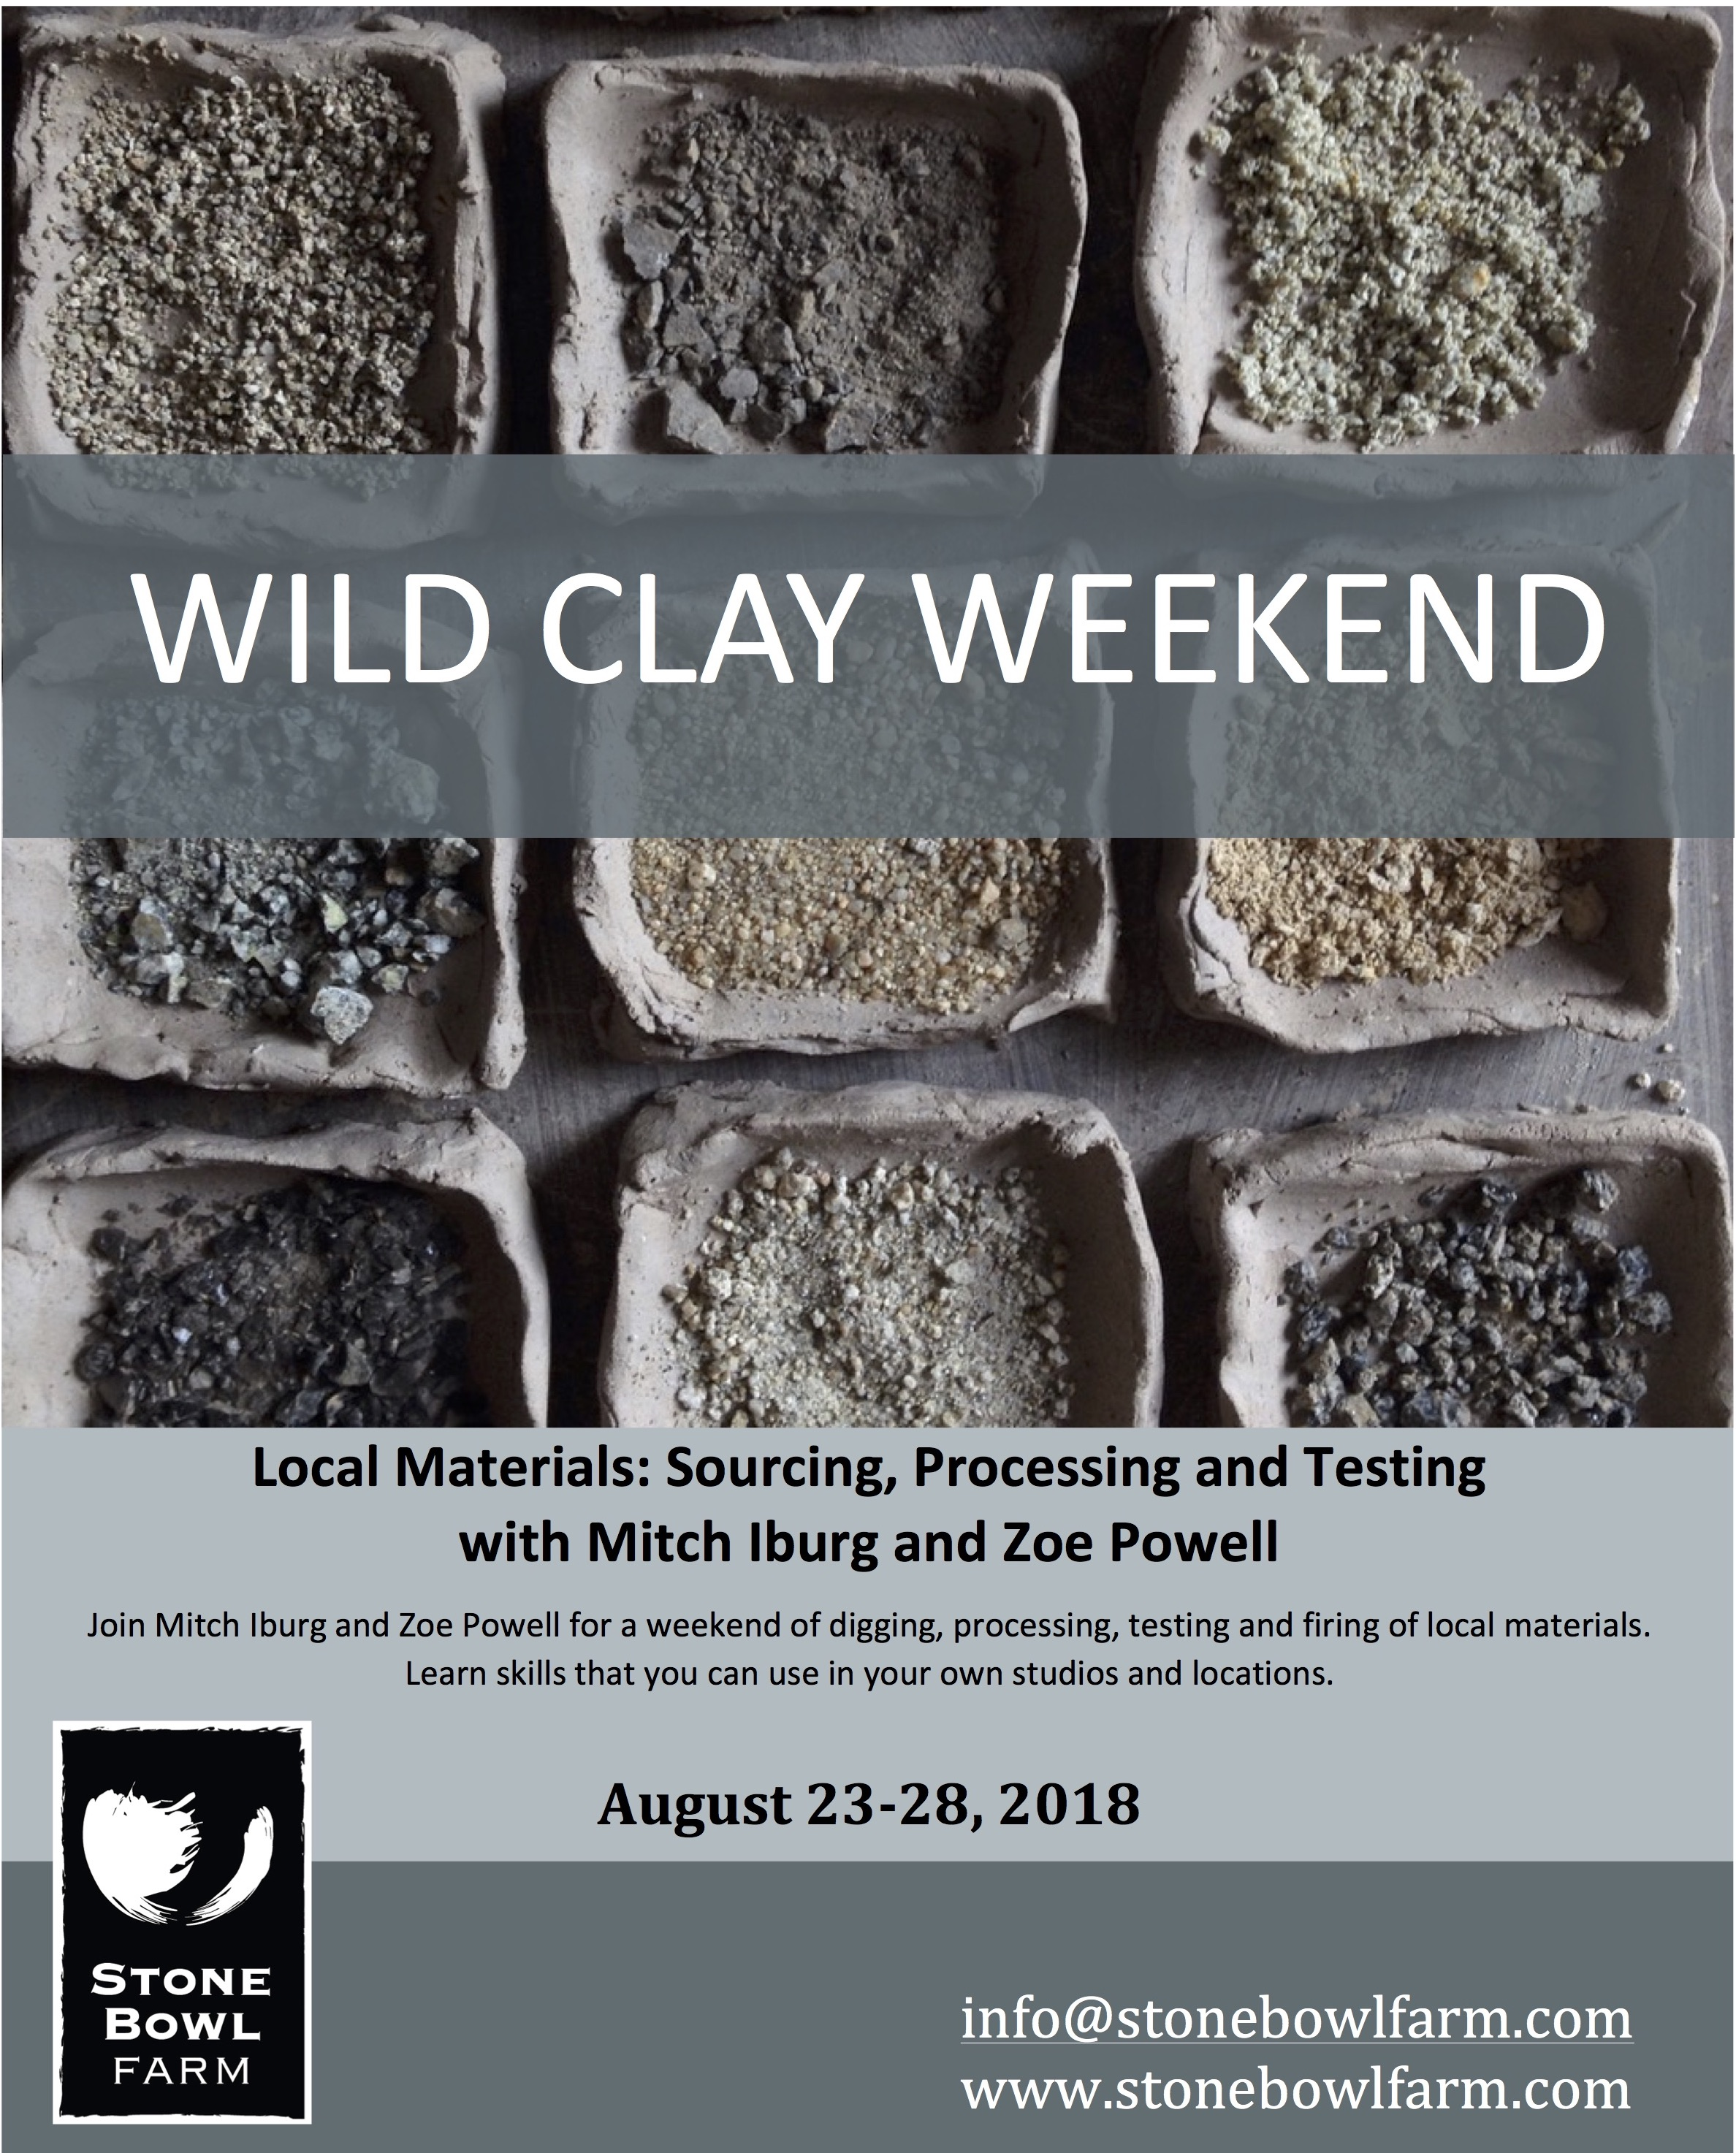 Wild Clay Flyer copy.jpg